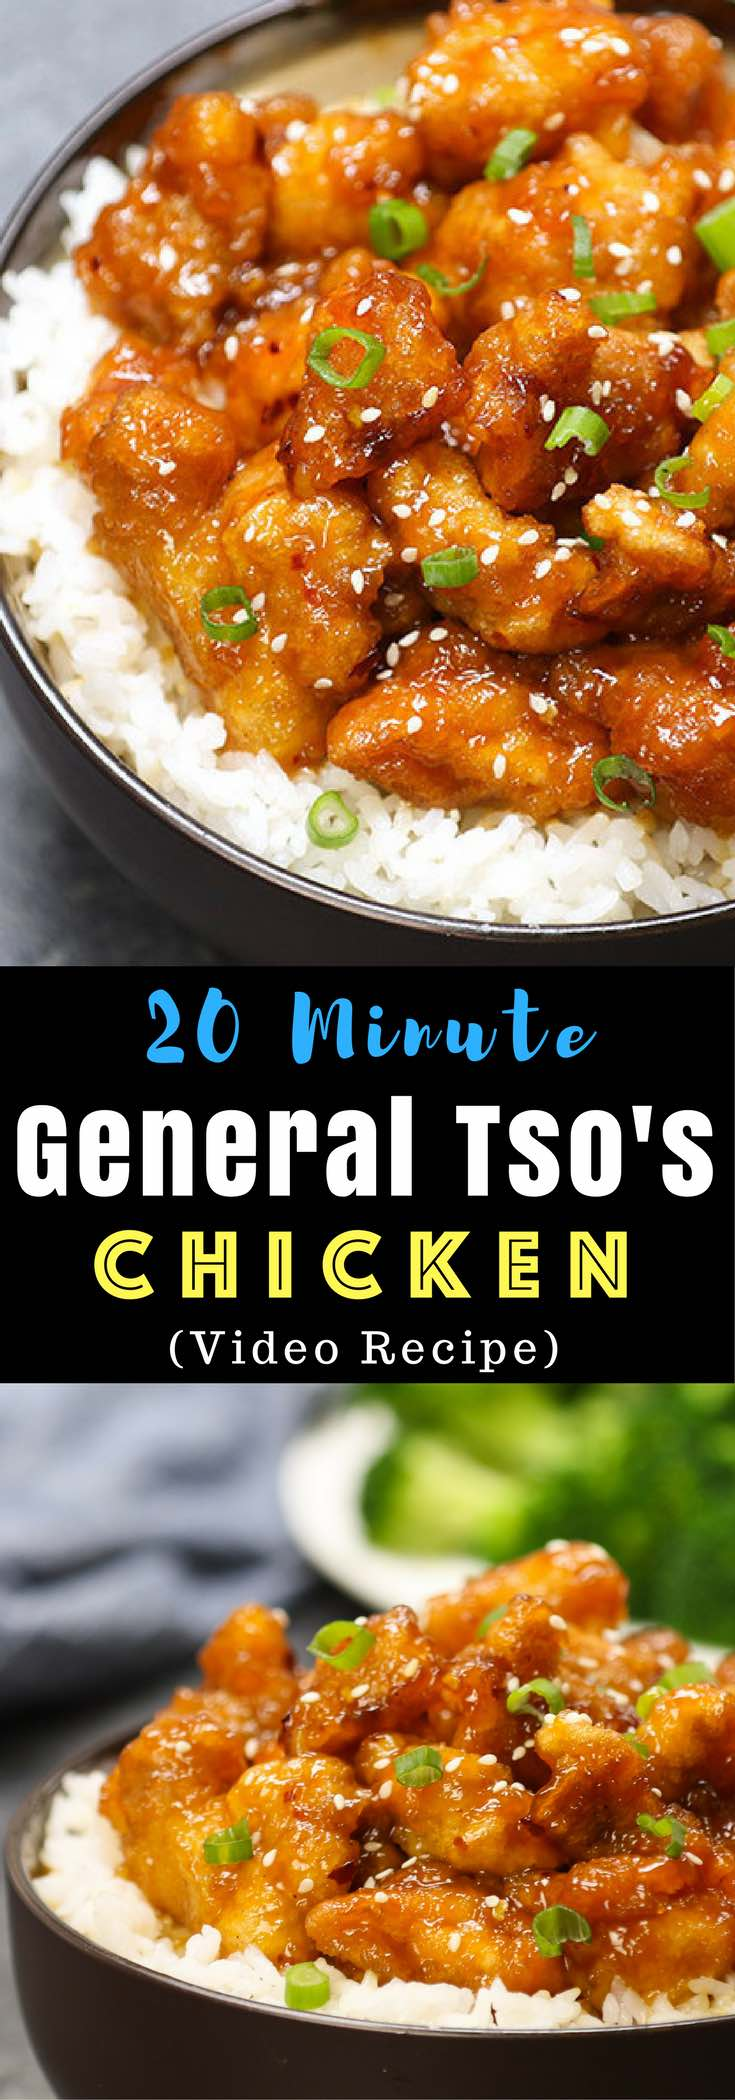 Better than take-out General Tso's Chicken for the perfect easy weeknight dish- crispy, tender and sweet! It will be on your dinner table in 20 minutes. All you need is just a few simple ingredients: chicken breast, corn starch, garlic, ginger hoisin sauce, soy sauce, rice vinegar and sugar. So delicious! Easy dinner recipe. Video recipe. #GeneralTsoChicken #EasyChickenRecipe | Tipbuzz.com